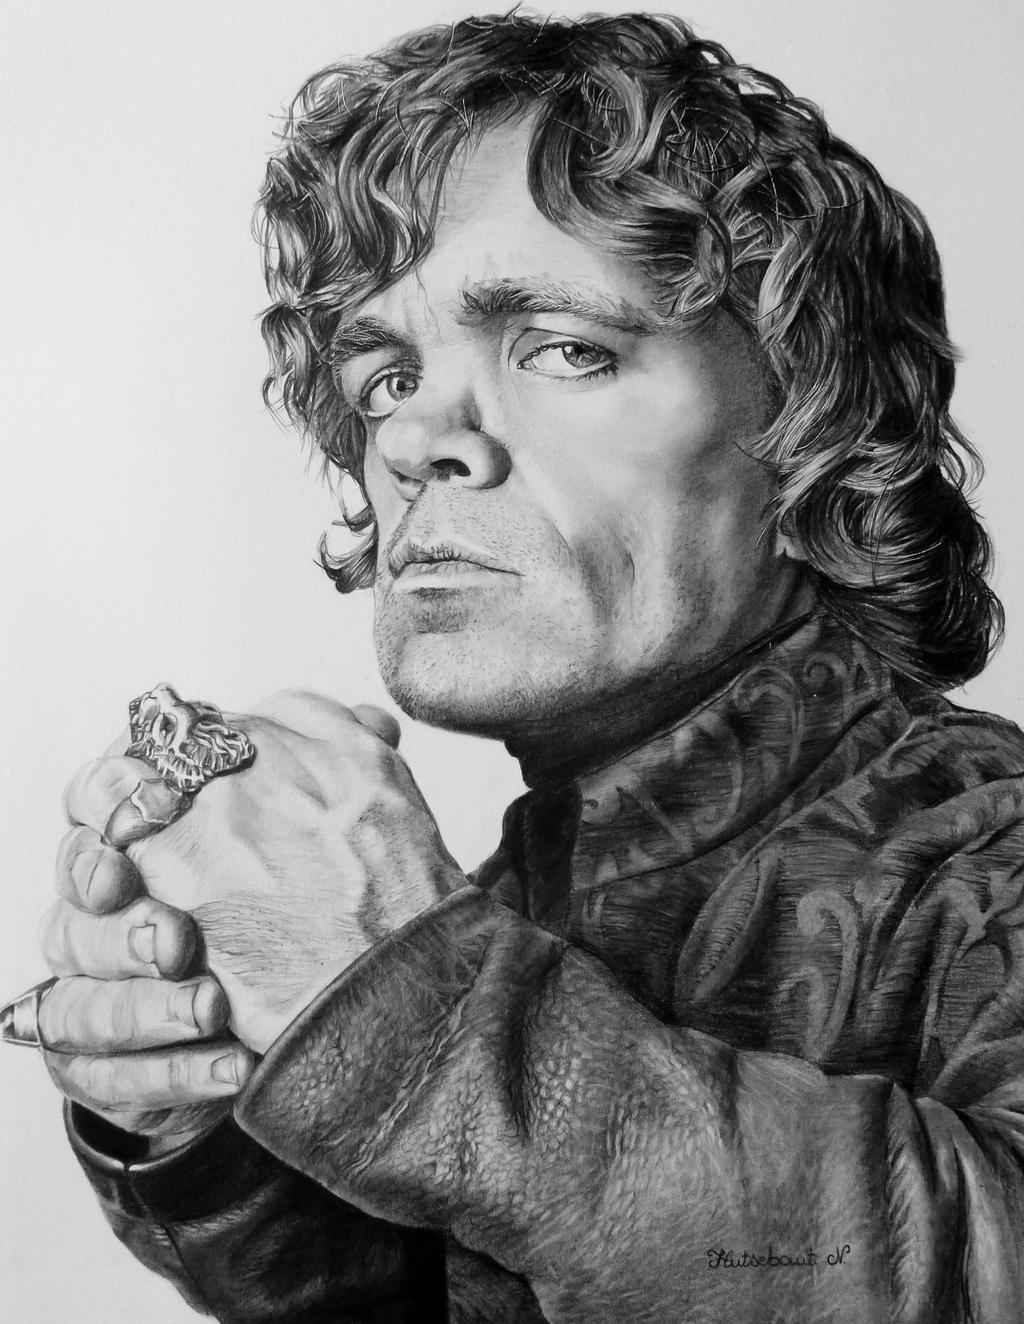 tyrion lannister by nathalief87 fan art traditional art drawings    Tyrion Lannister Fan Art